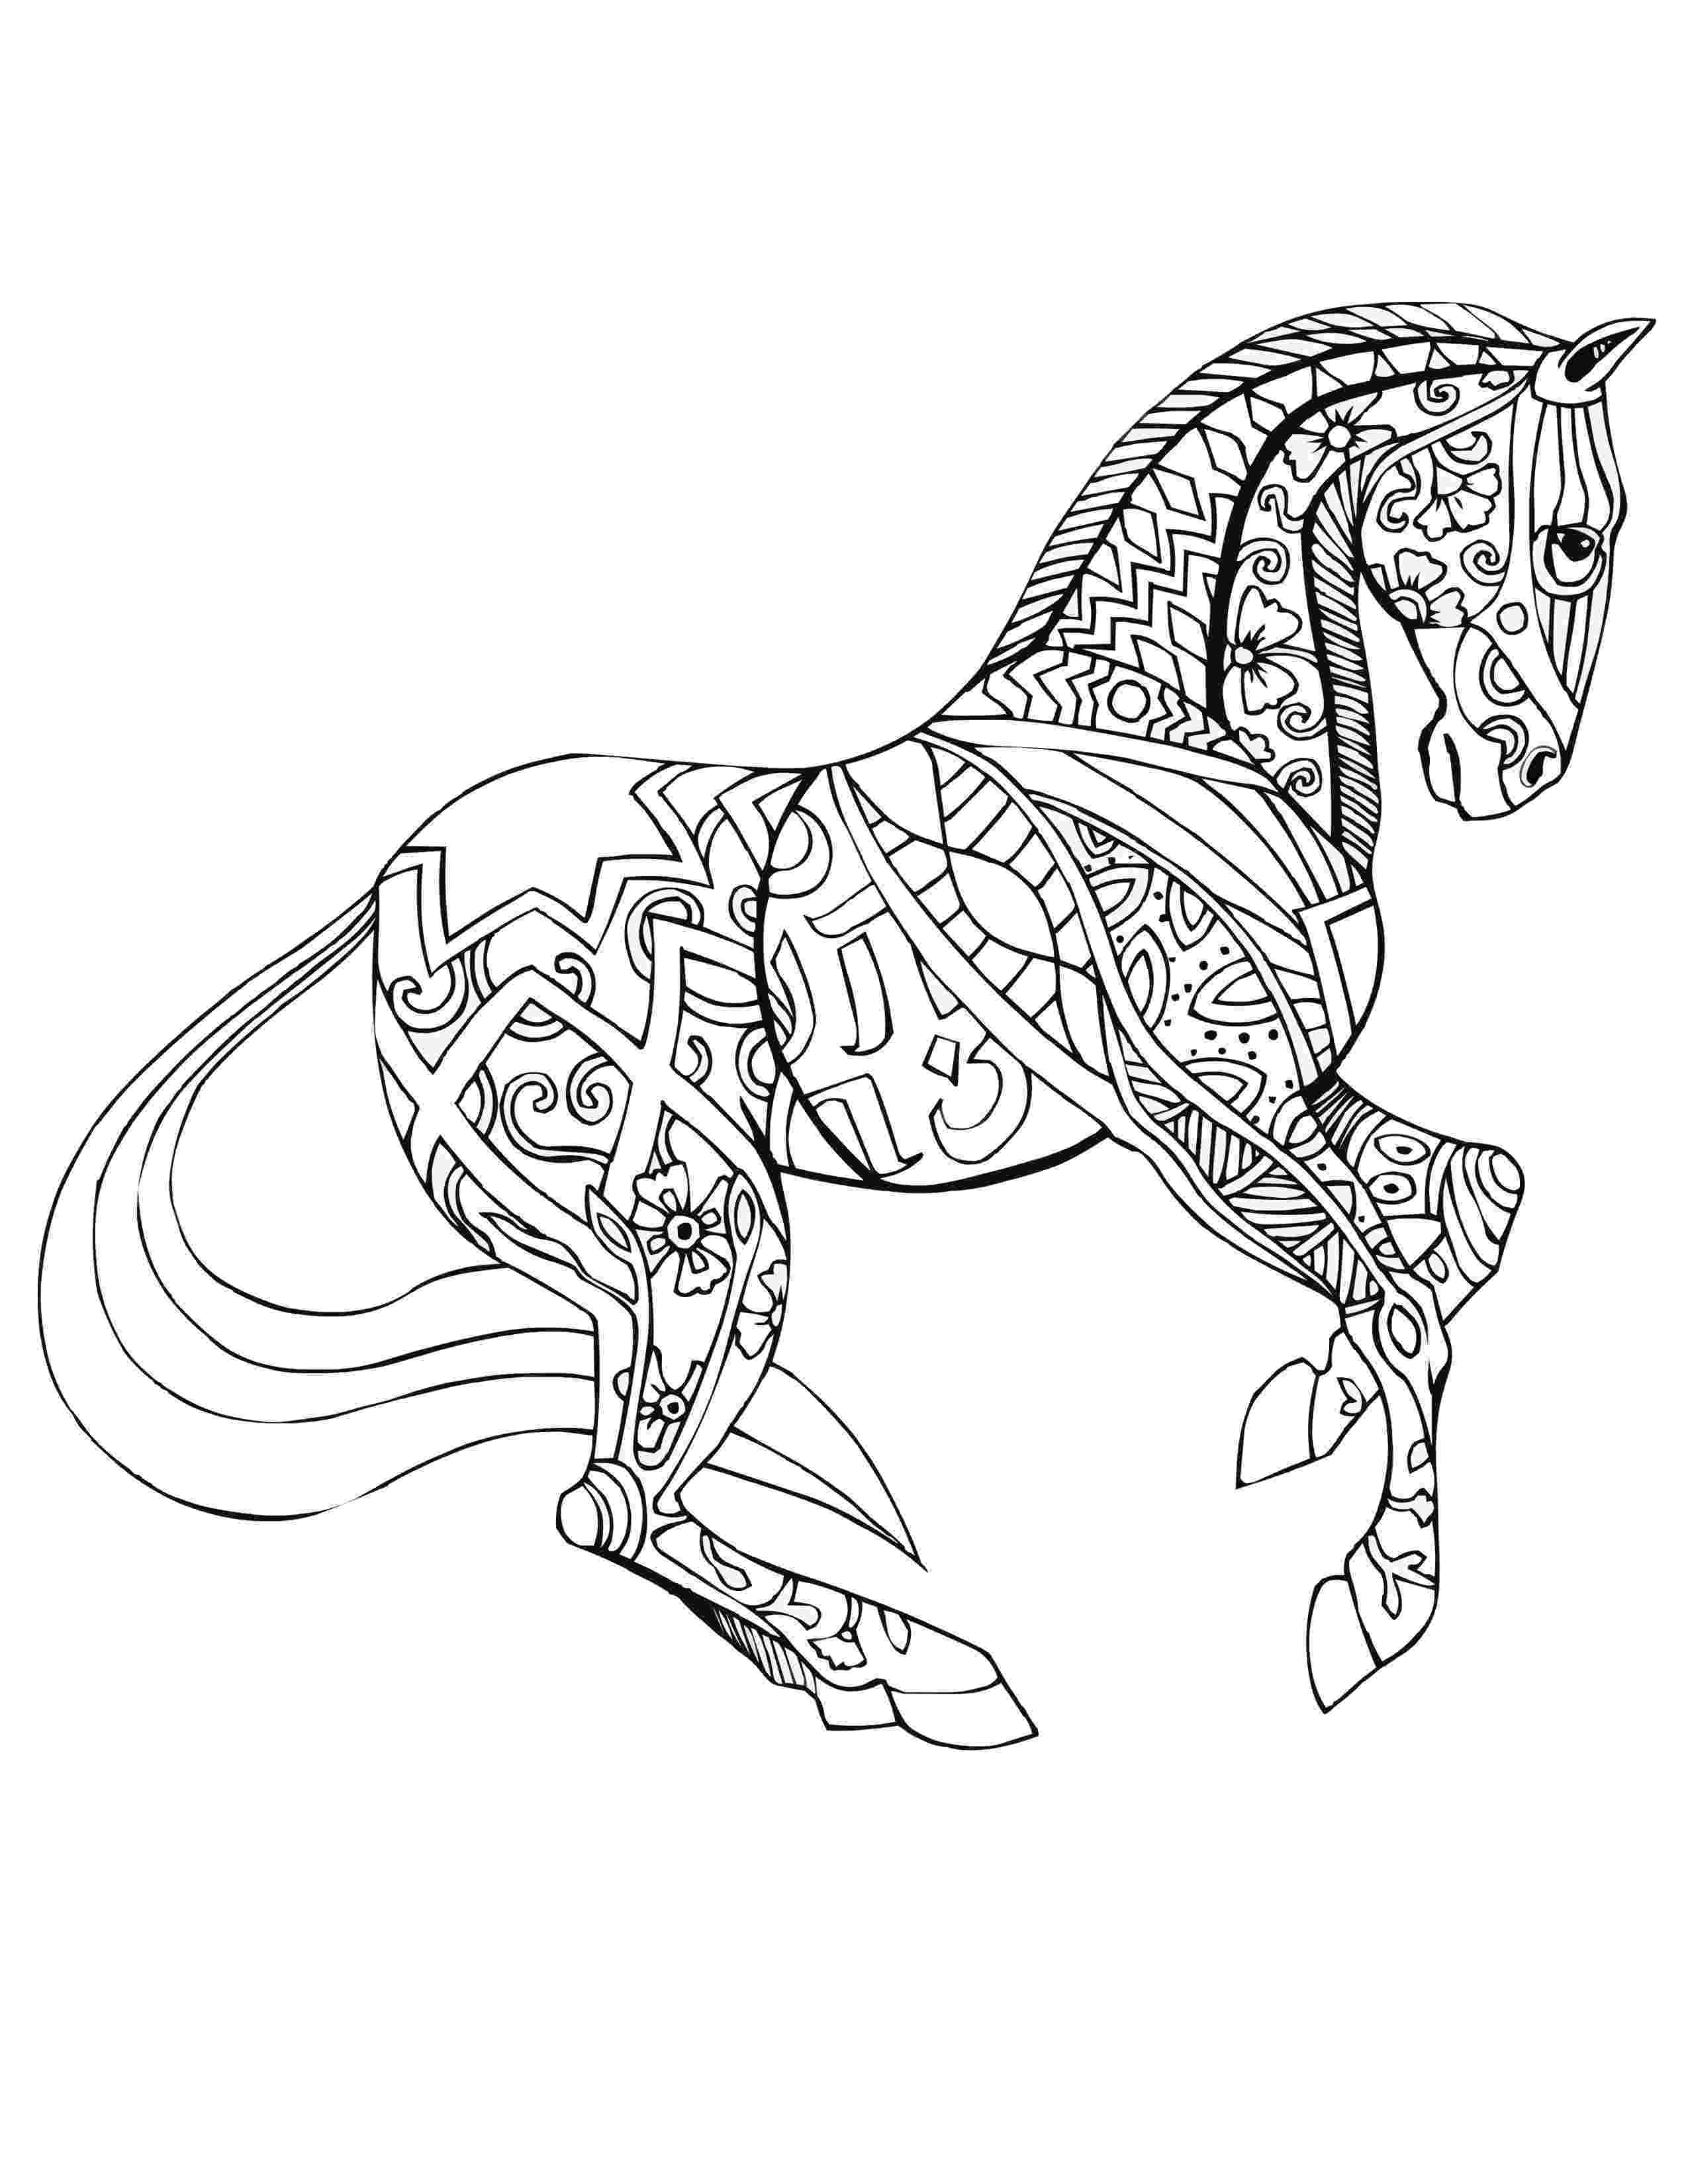 printable horse coloring pages for adults how adult colouring therapy could improve your mental for coloring horse printable adults pages